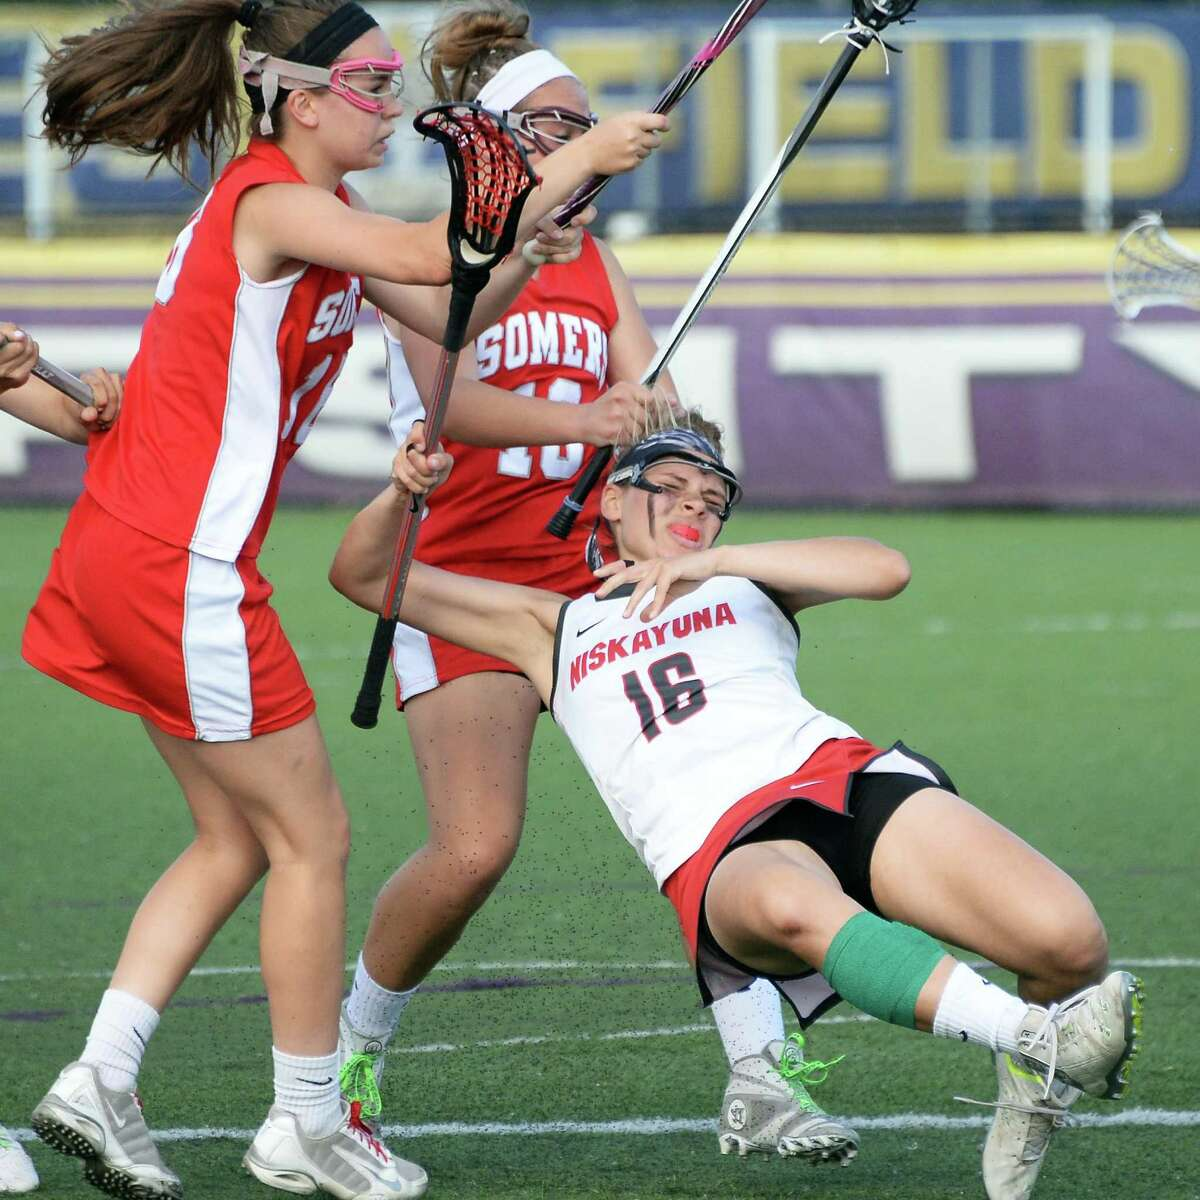 Niskayuna's #16 Alissa Franze, right, goes down amid Somers' #16 Tara Curran, left, and #10 Nina Bradbury after firing off a shot during their Class B girls' lacrosse regional final Saturday May 30, 2015 in Albany, NY. (John Carl D'Annibale / Times Union)